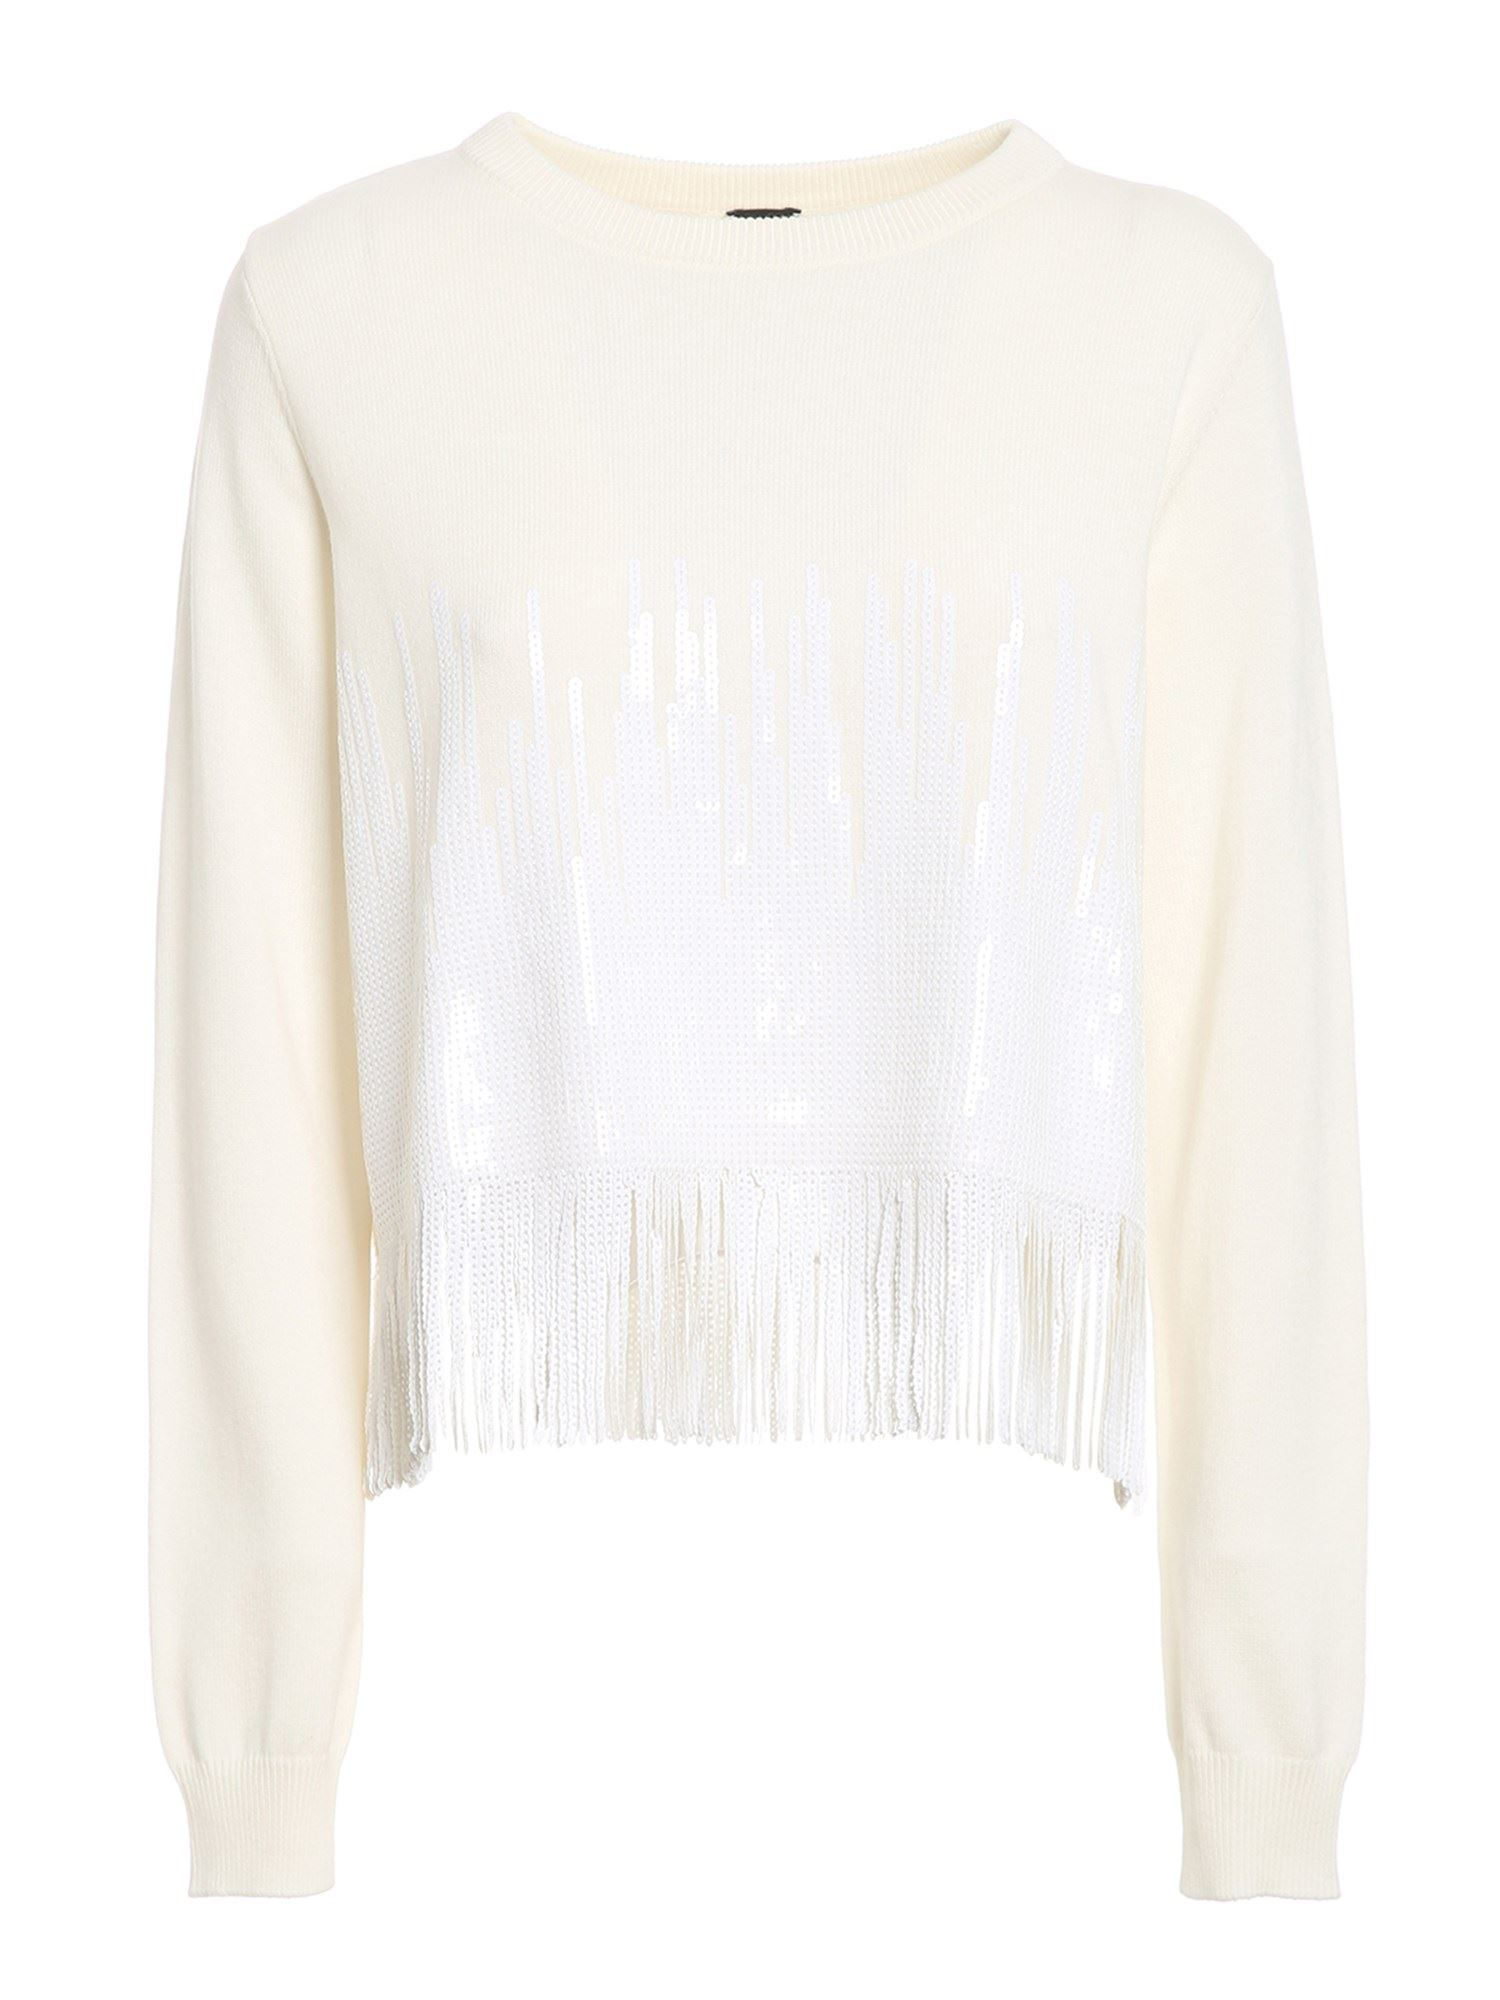 PINKO PINKO SNOWBOARD SWEATER IN WHITE